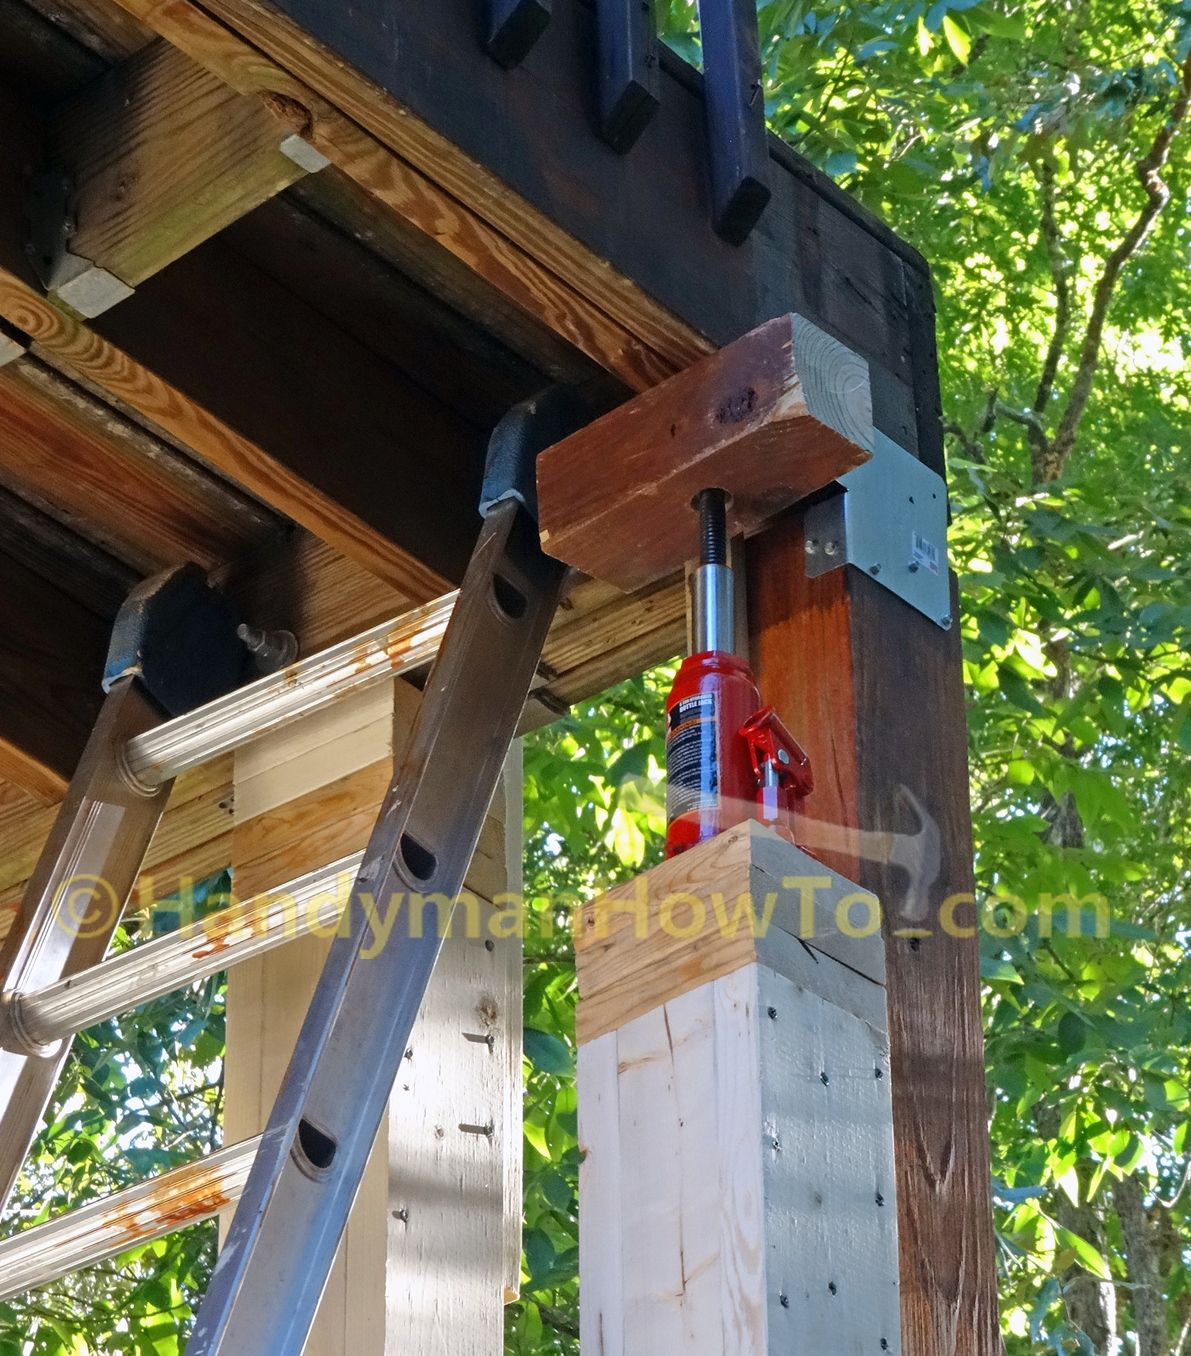 How To Install A 6x6 Wood Deck Post By Jack Up The Deck